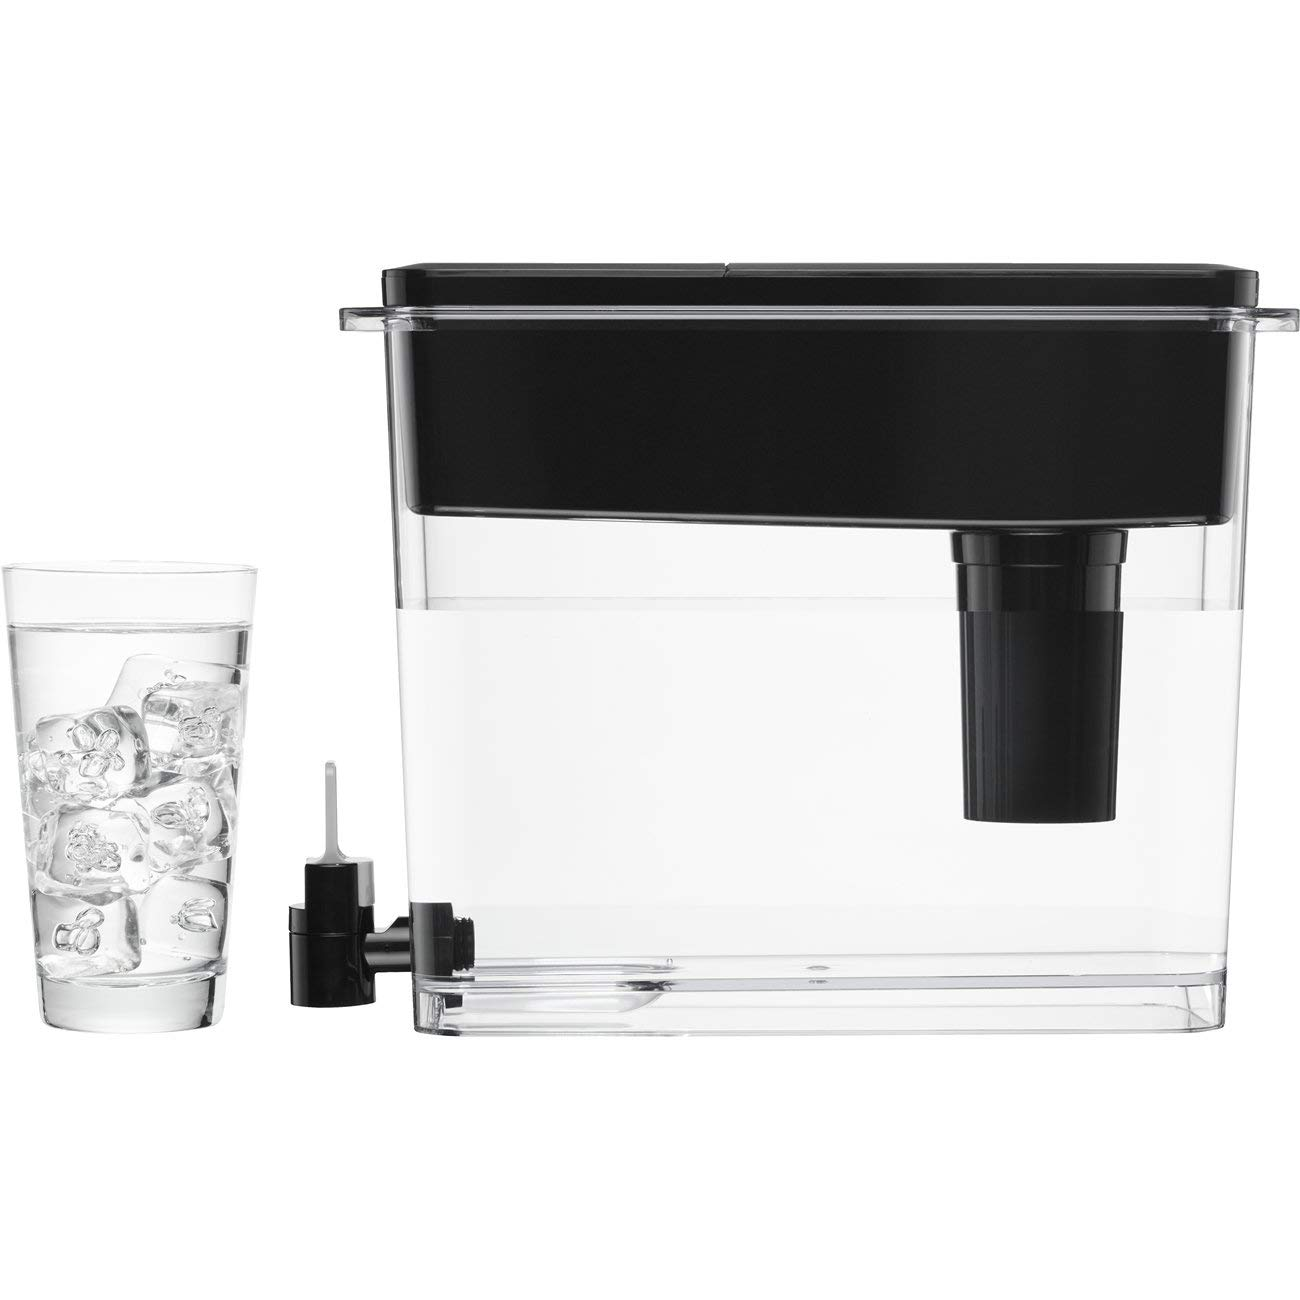 Brita Extra Large 18 Cup UltraMax Water Dispenser and Filter - BPA Free - Black by Brita (Image #5)